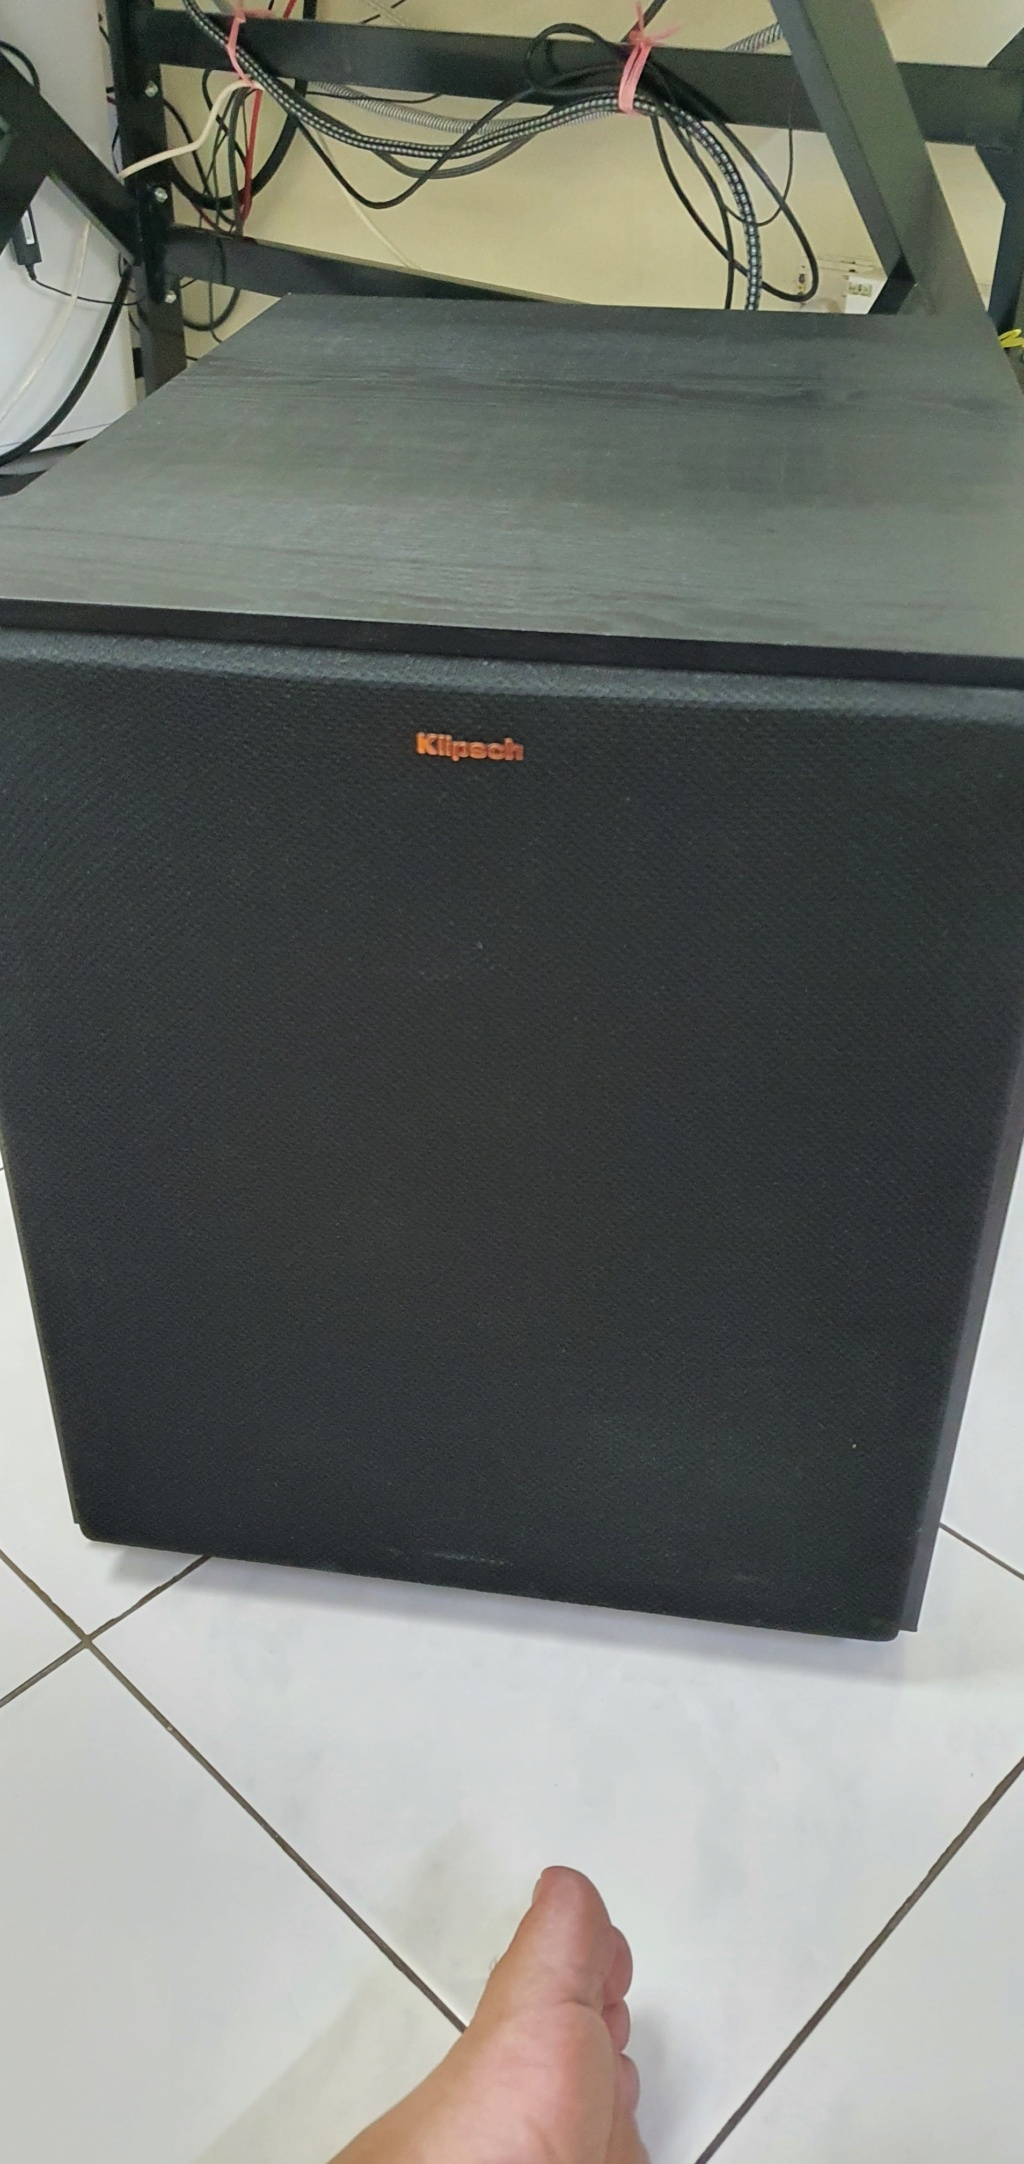 Klipsch R-120SW Subwoofer (under warrenrty) 20210410